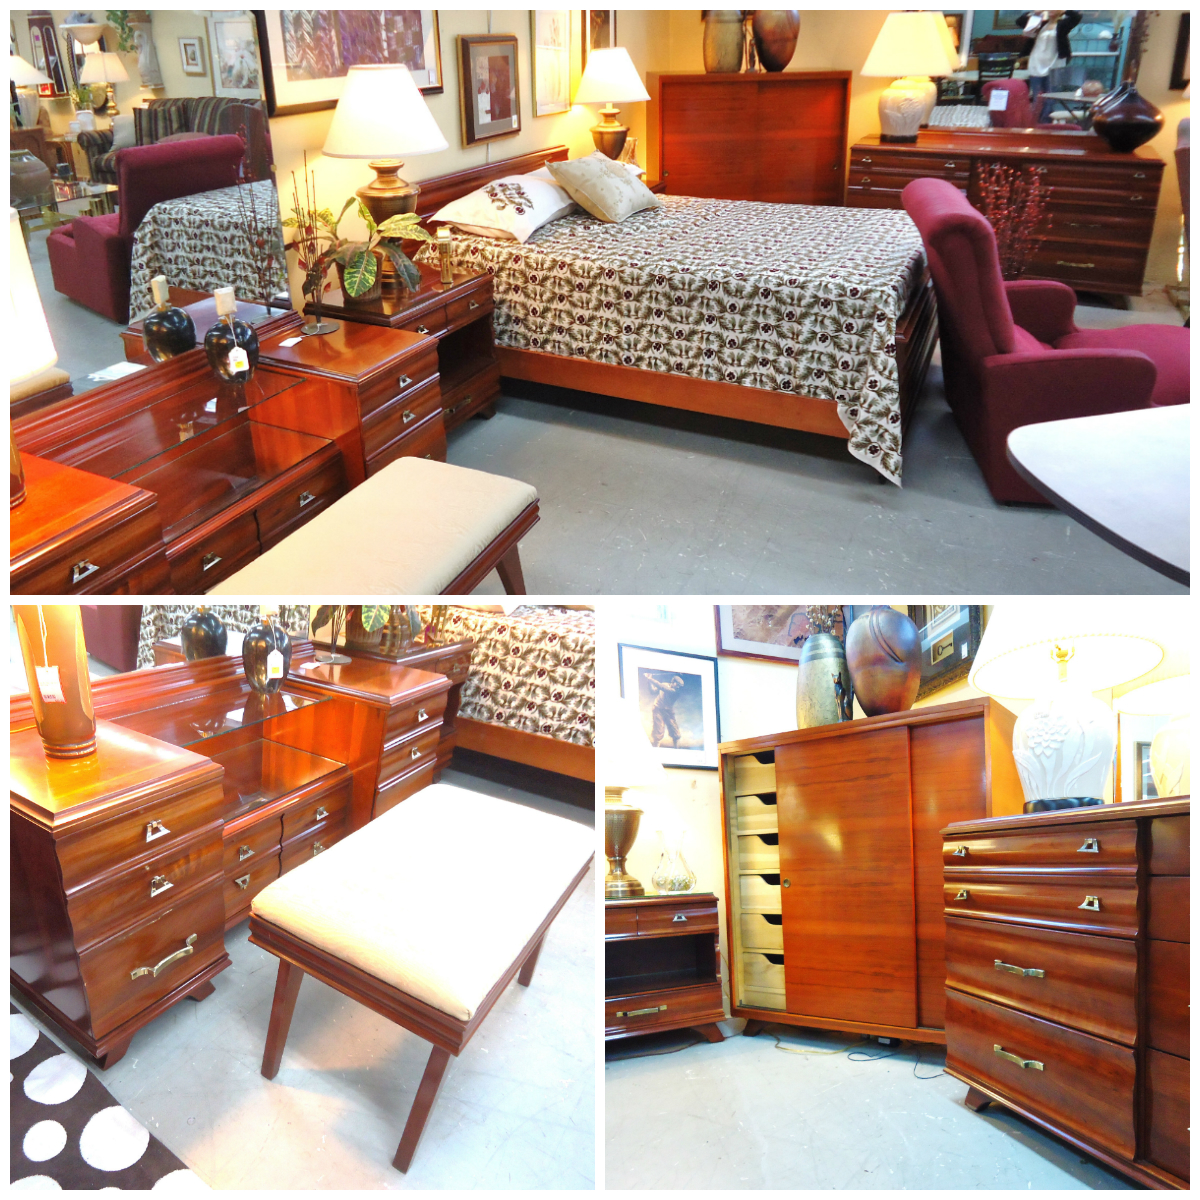 "Used Furniture Gallery: 1-14294"" Kling Furniture"" Solid Cherry 6pc Bedroom Set"